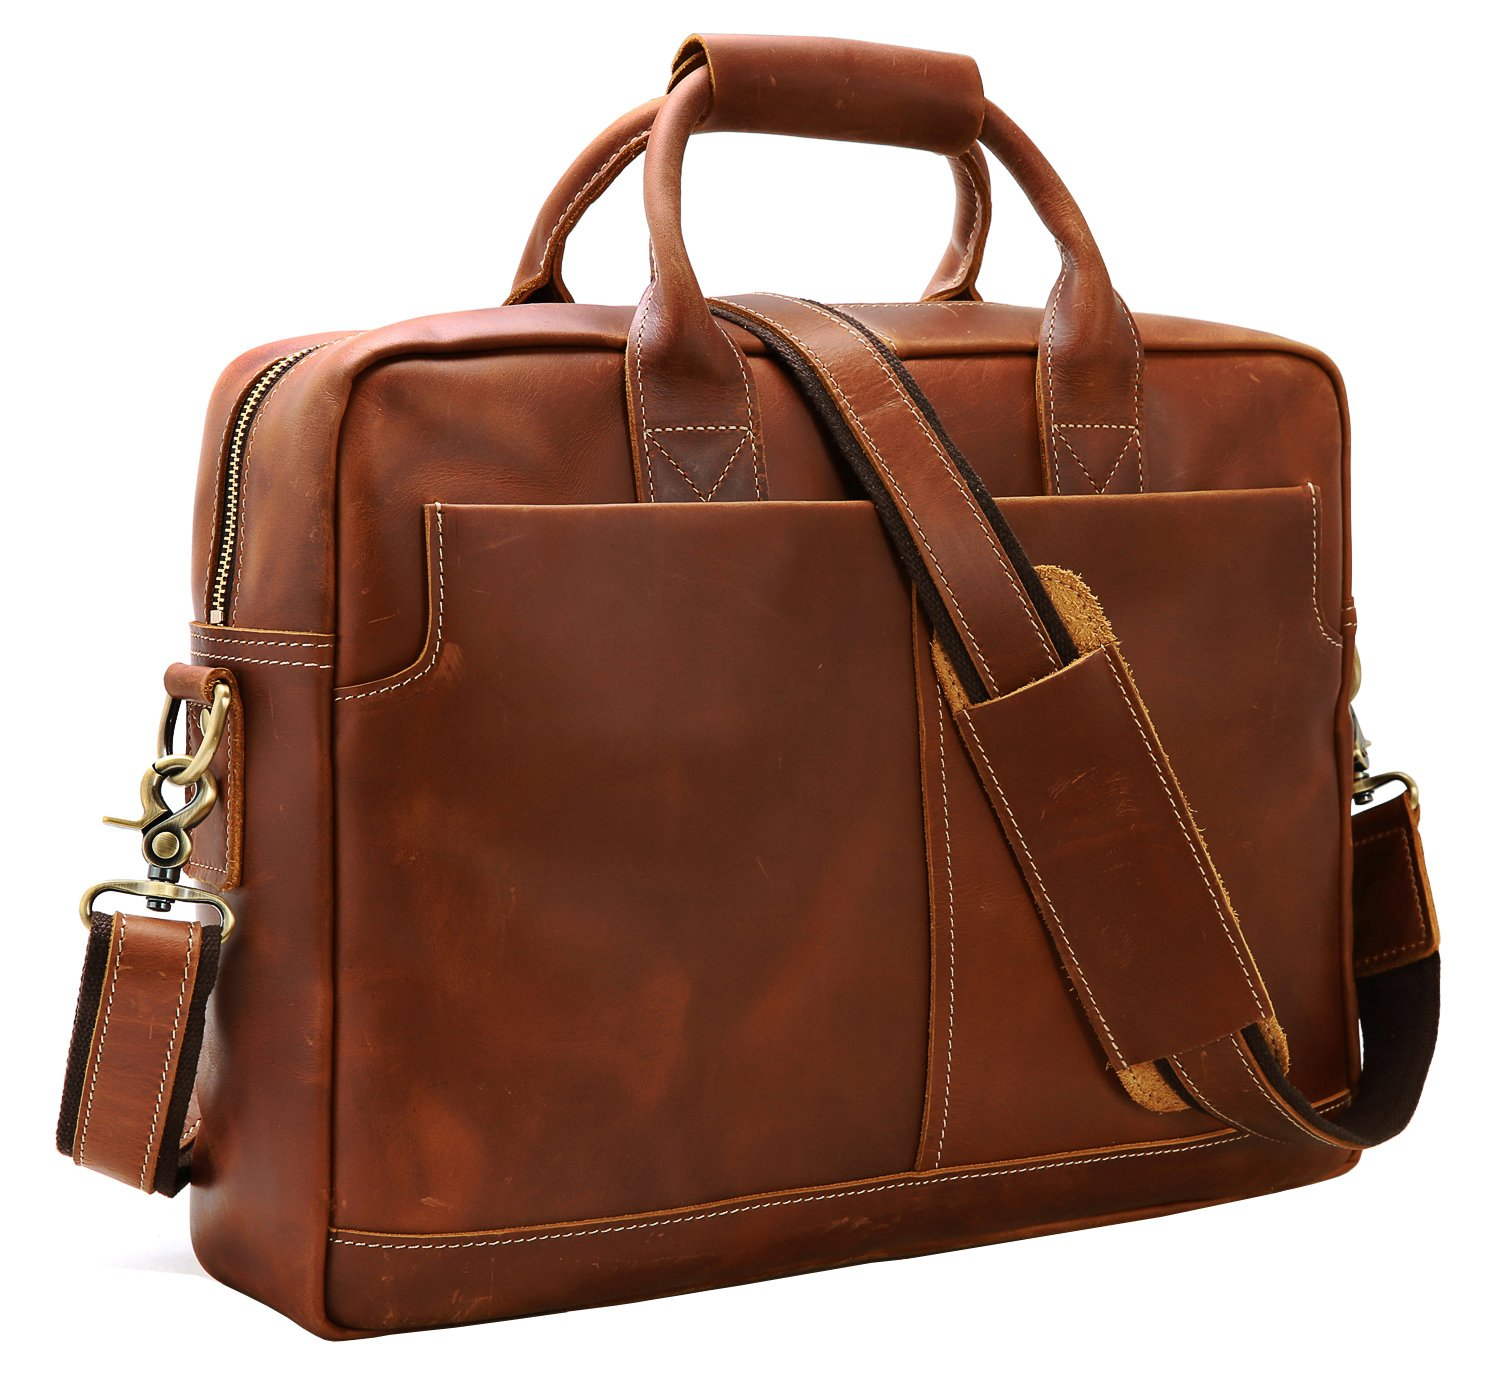 d1000274ce Iswee Men Leather Messenger Bag Laptop Briefcase Vintage Handbag Attache  Case (Light Brown) free